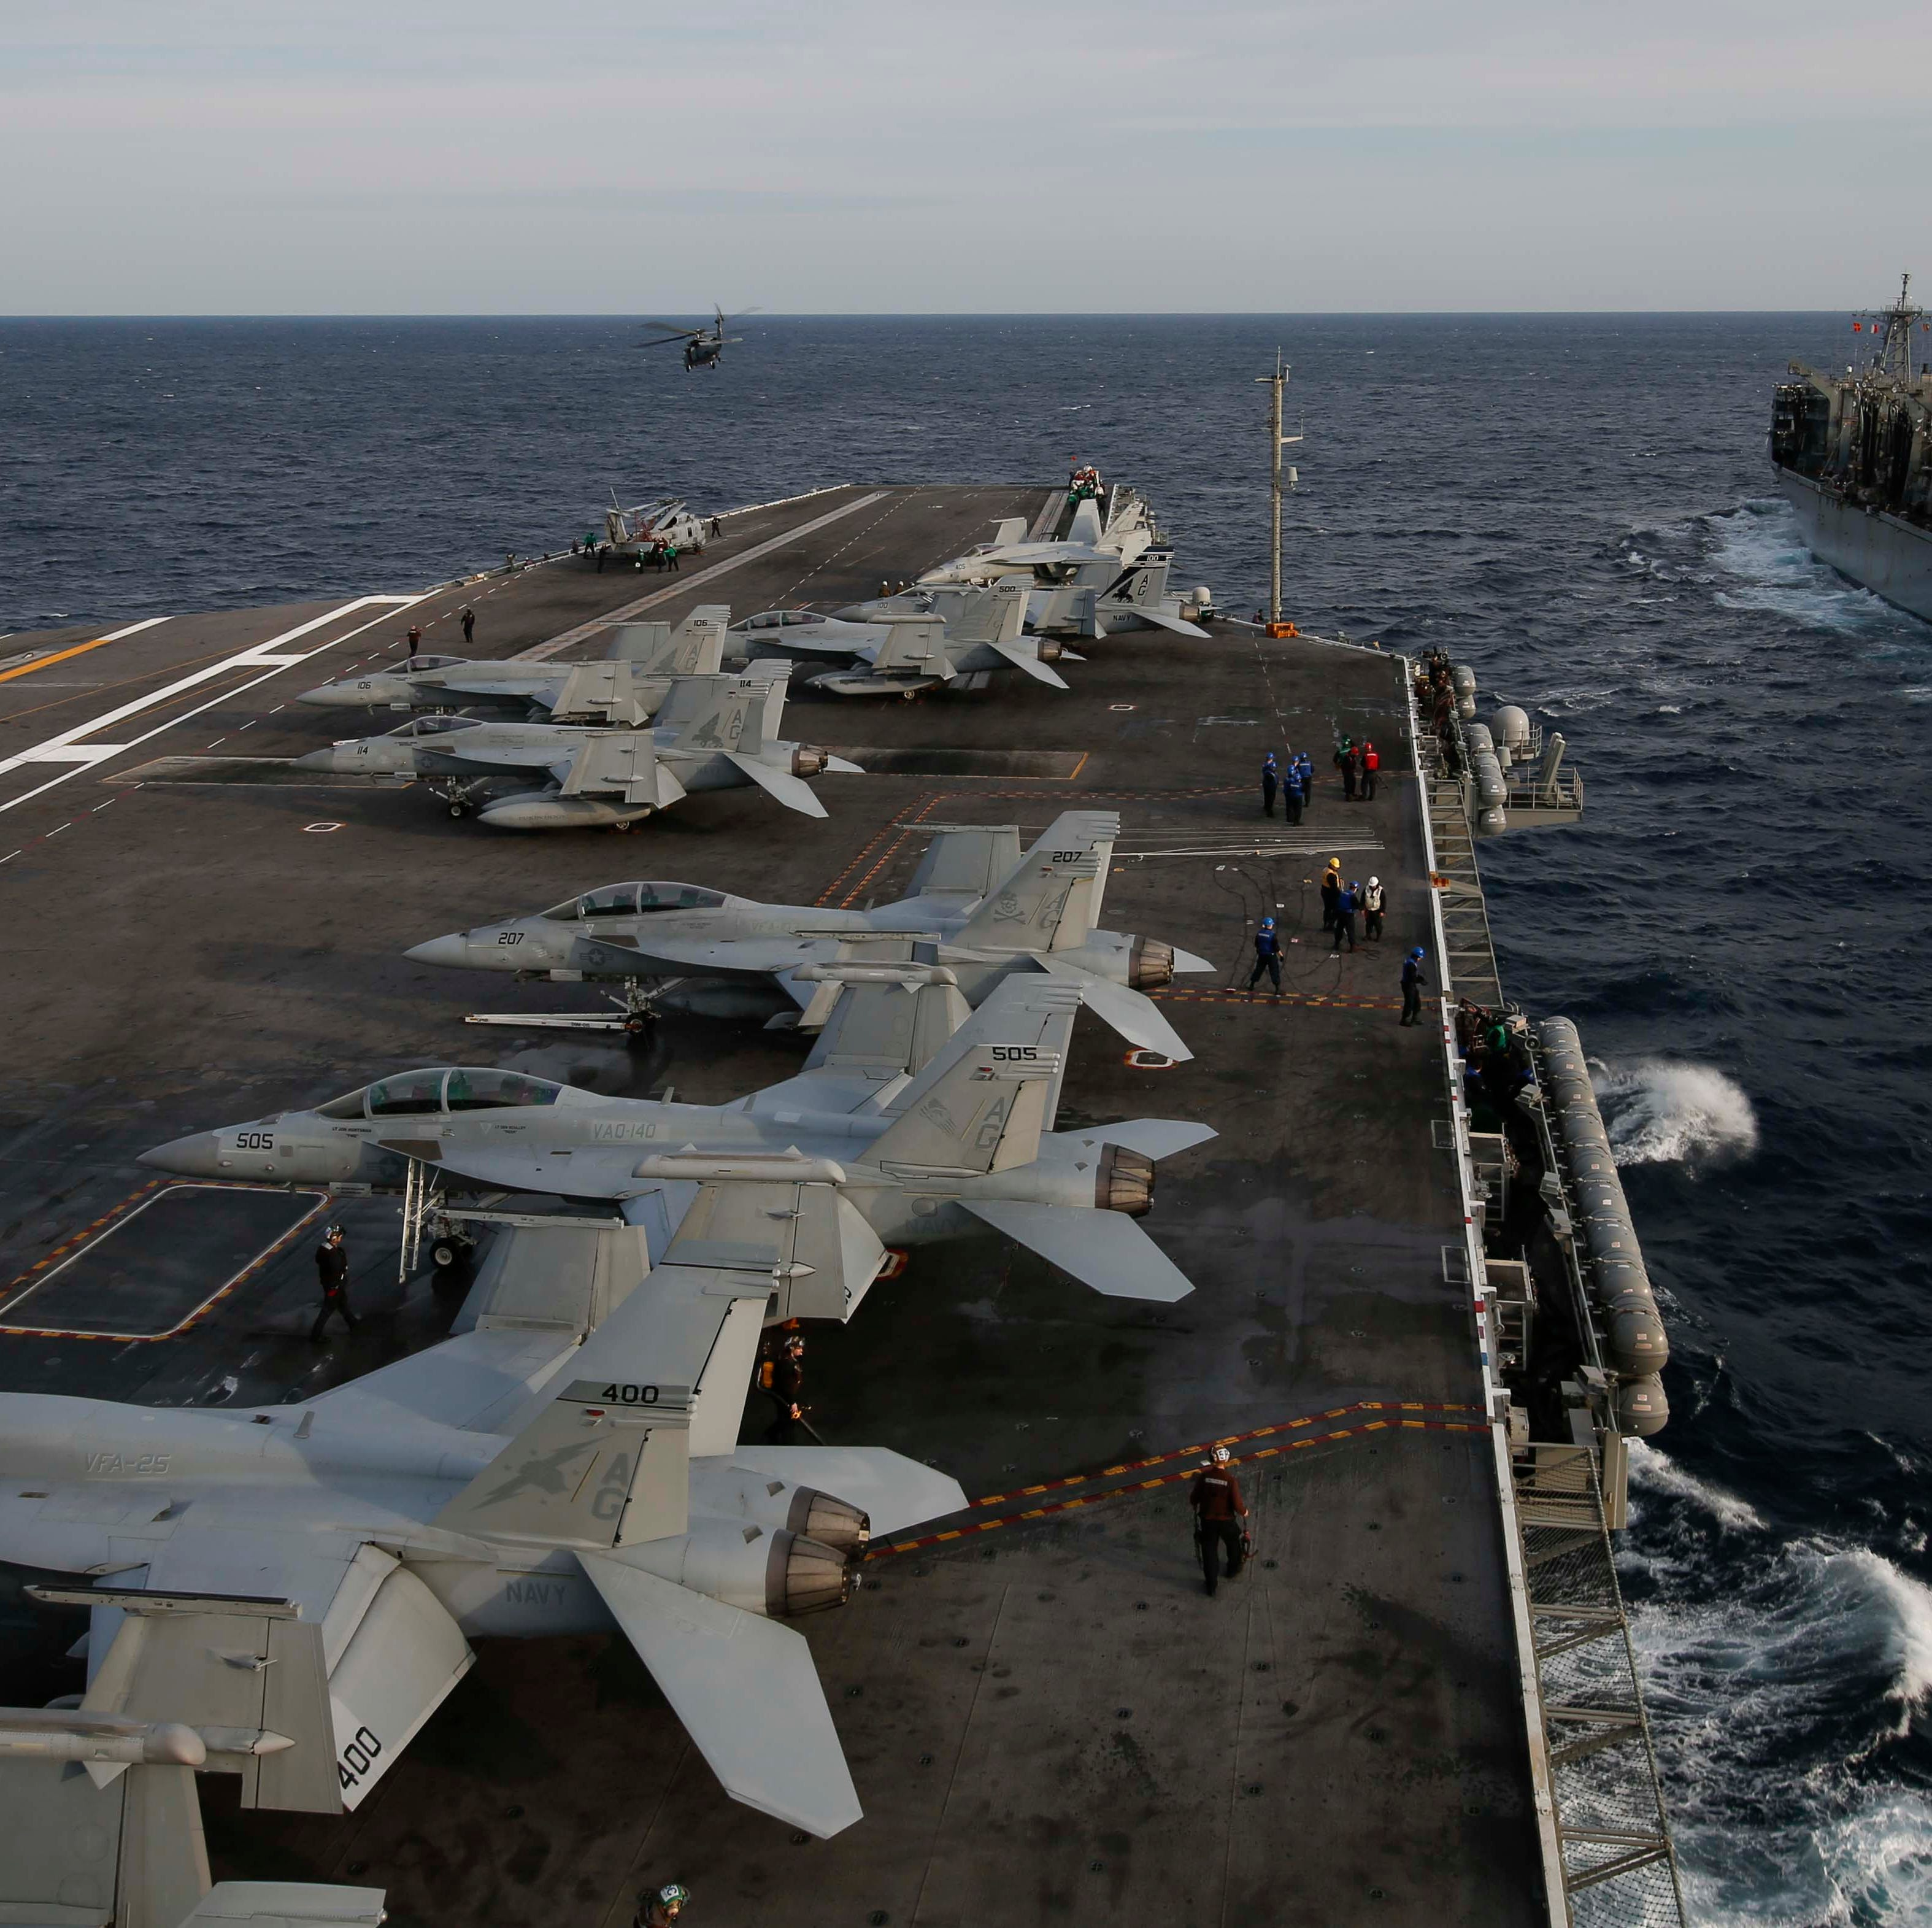 Despite America's needs here, we must think carefully before cutting back on the US Navy